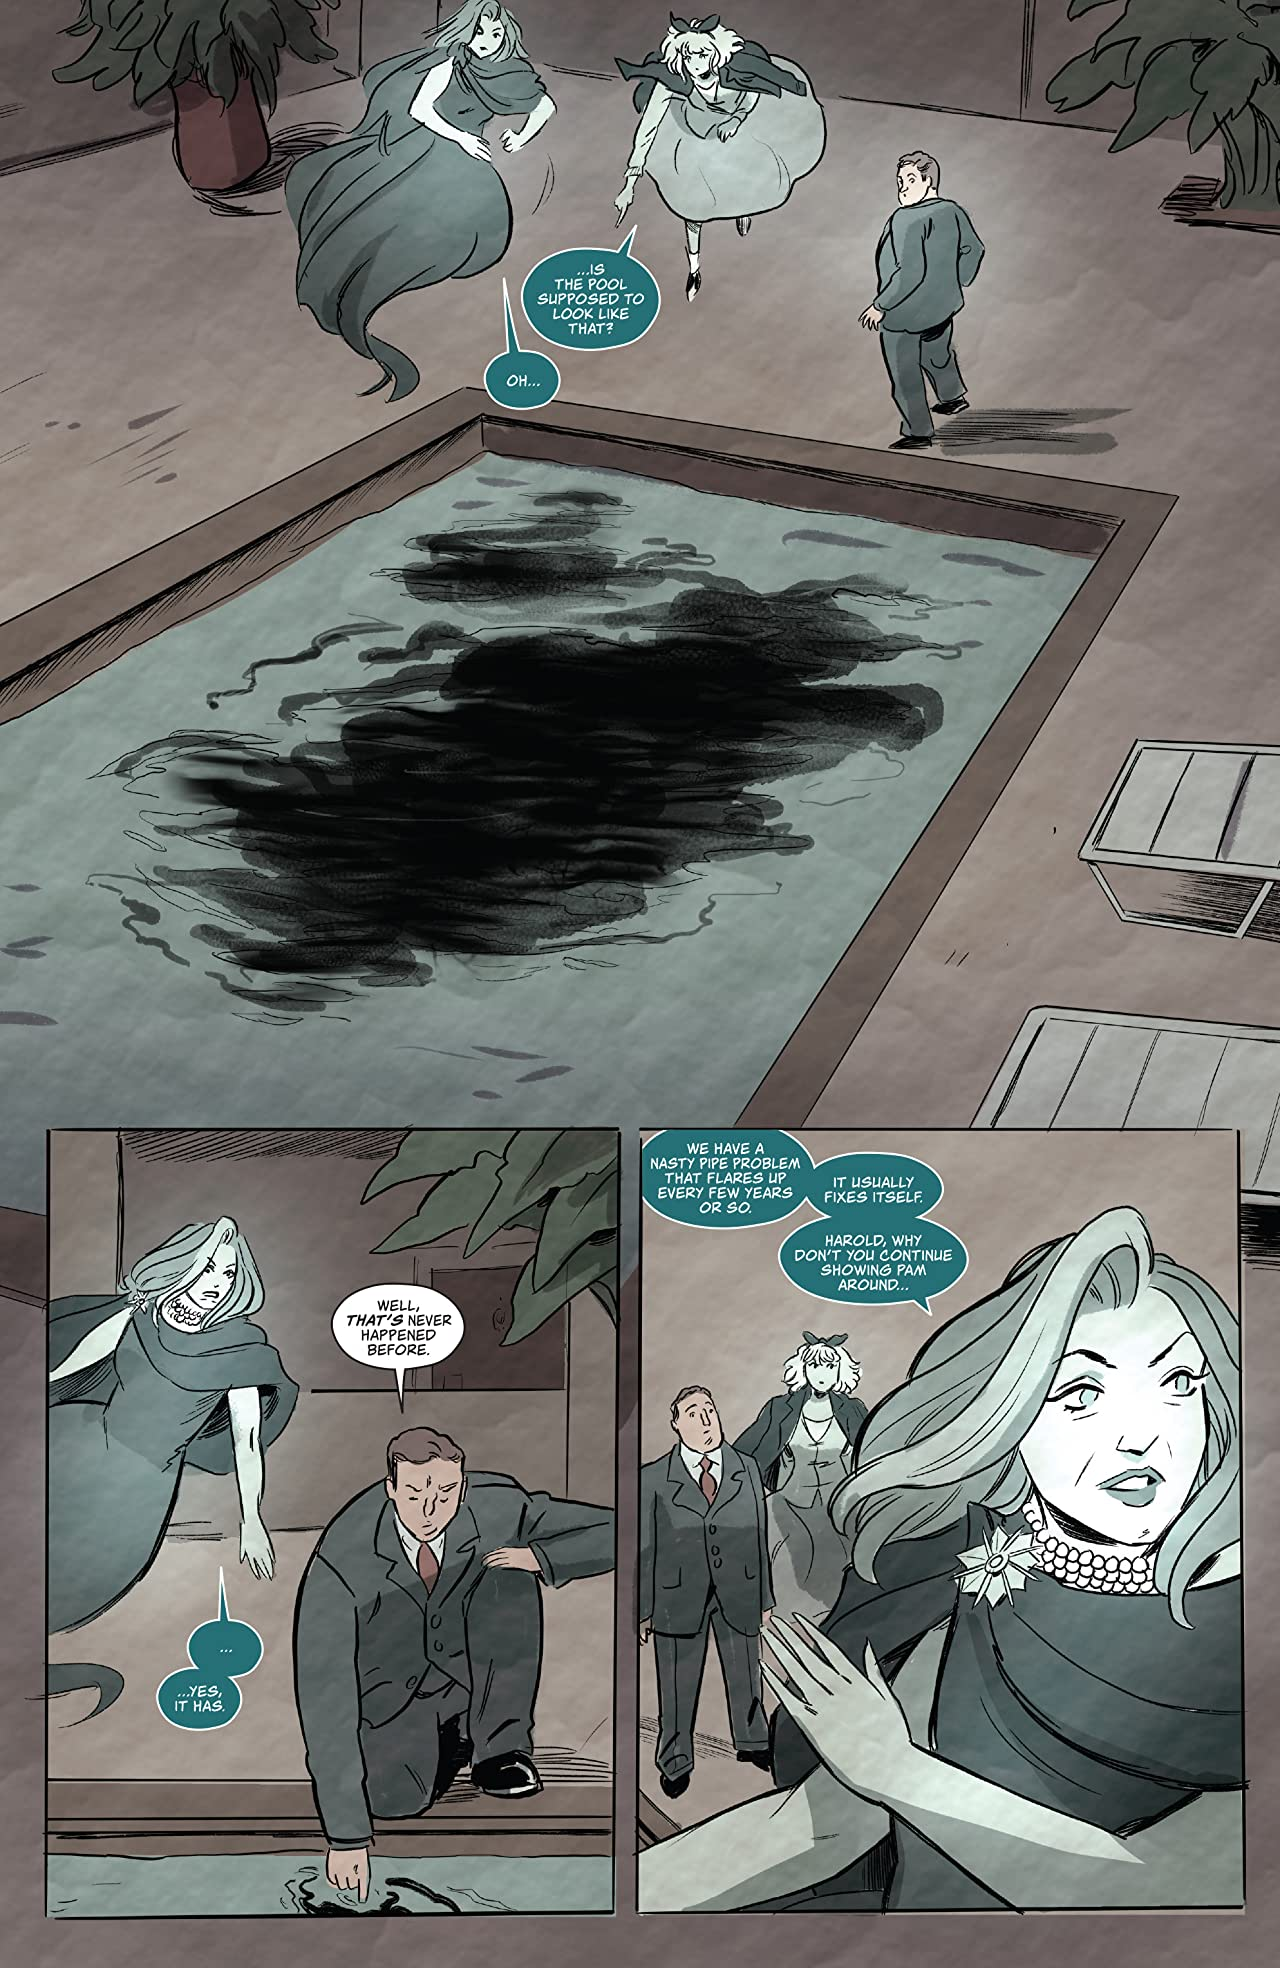 Ghosted in L.A. #10